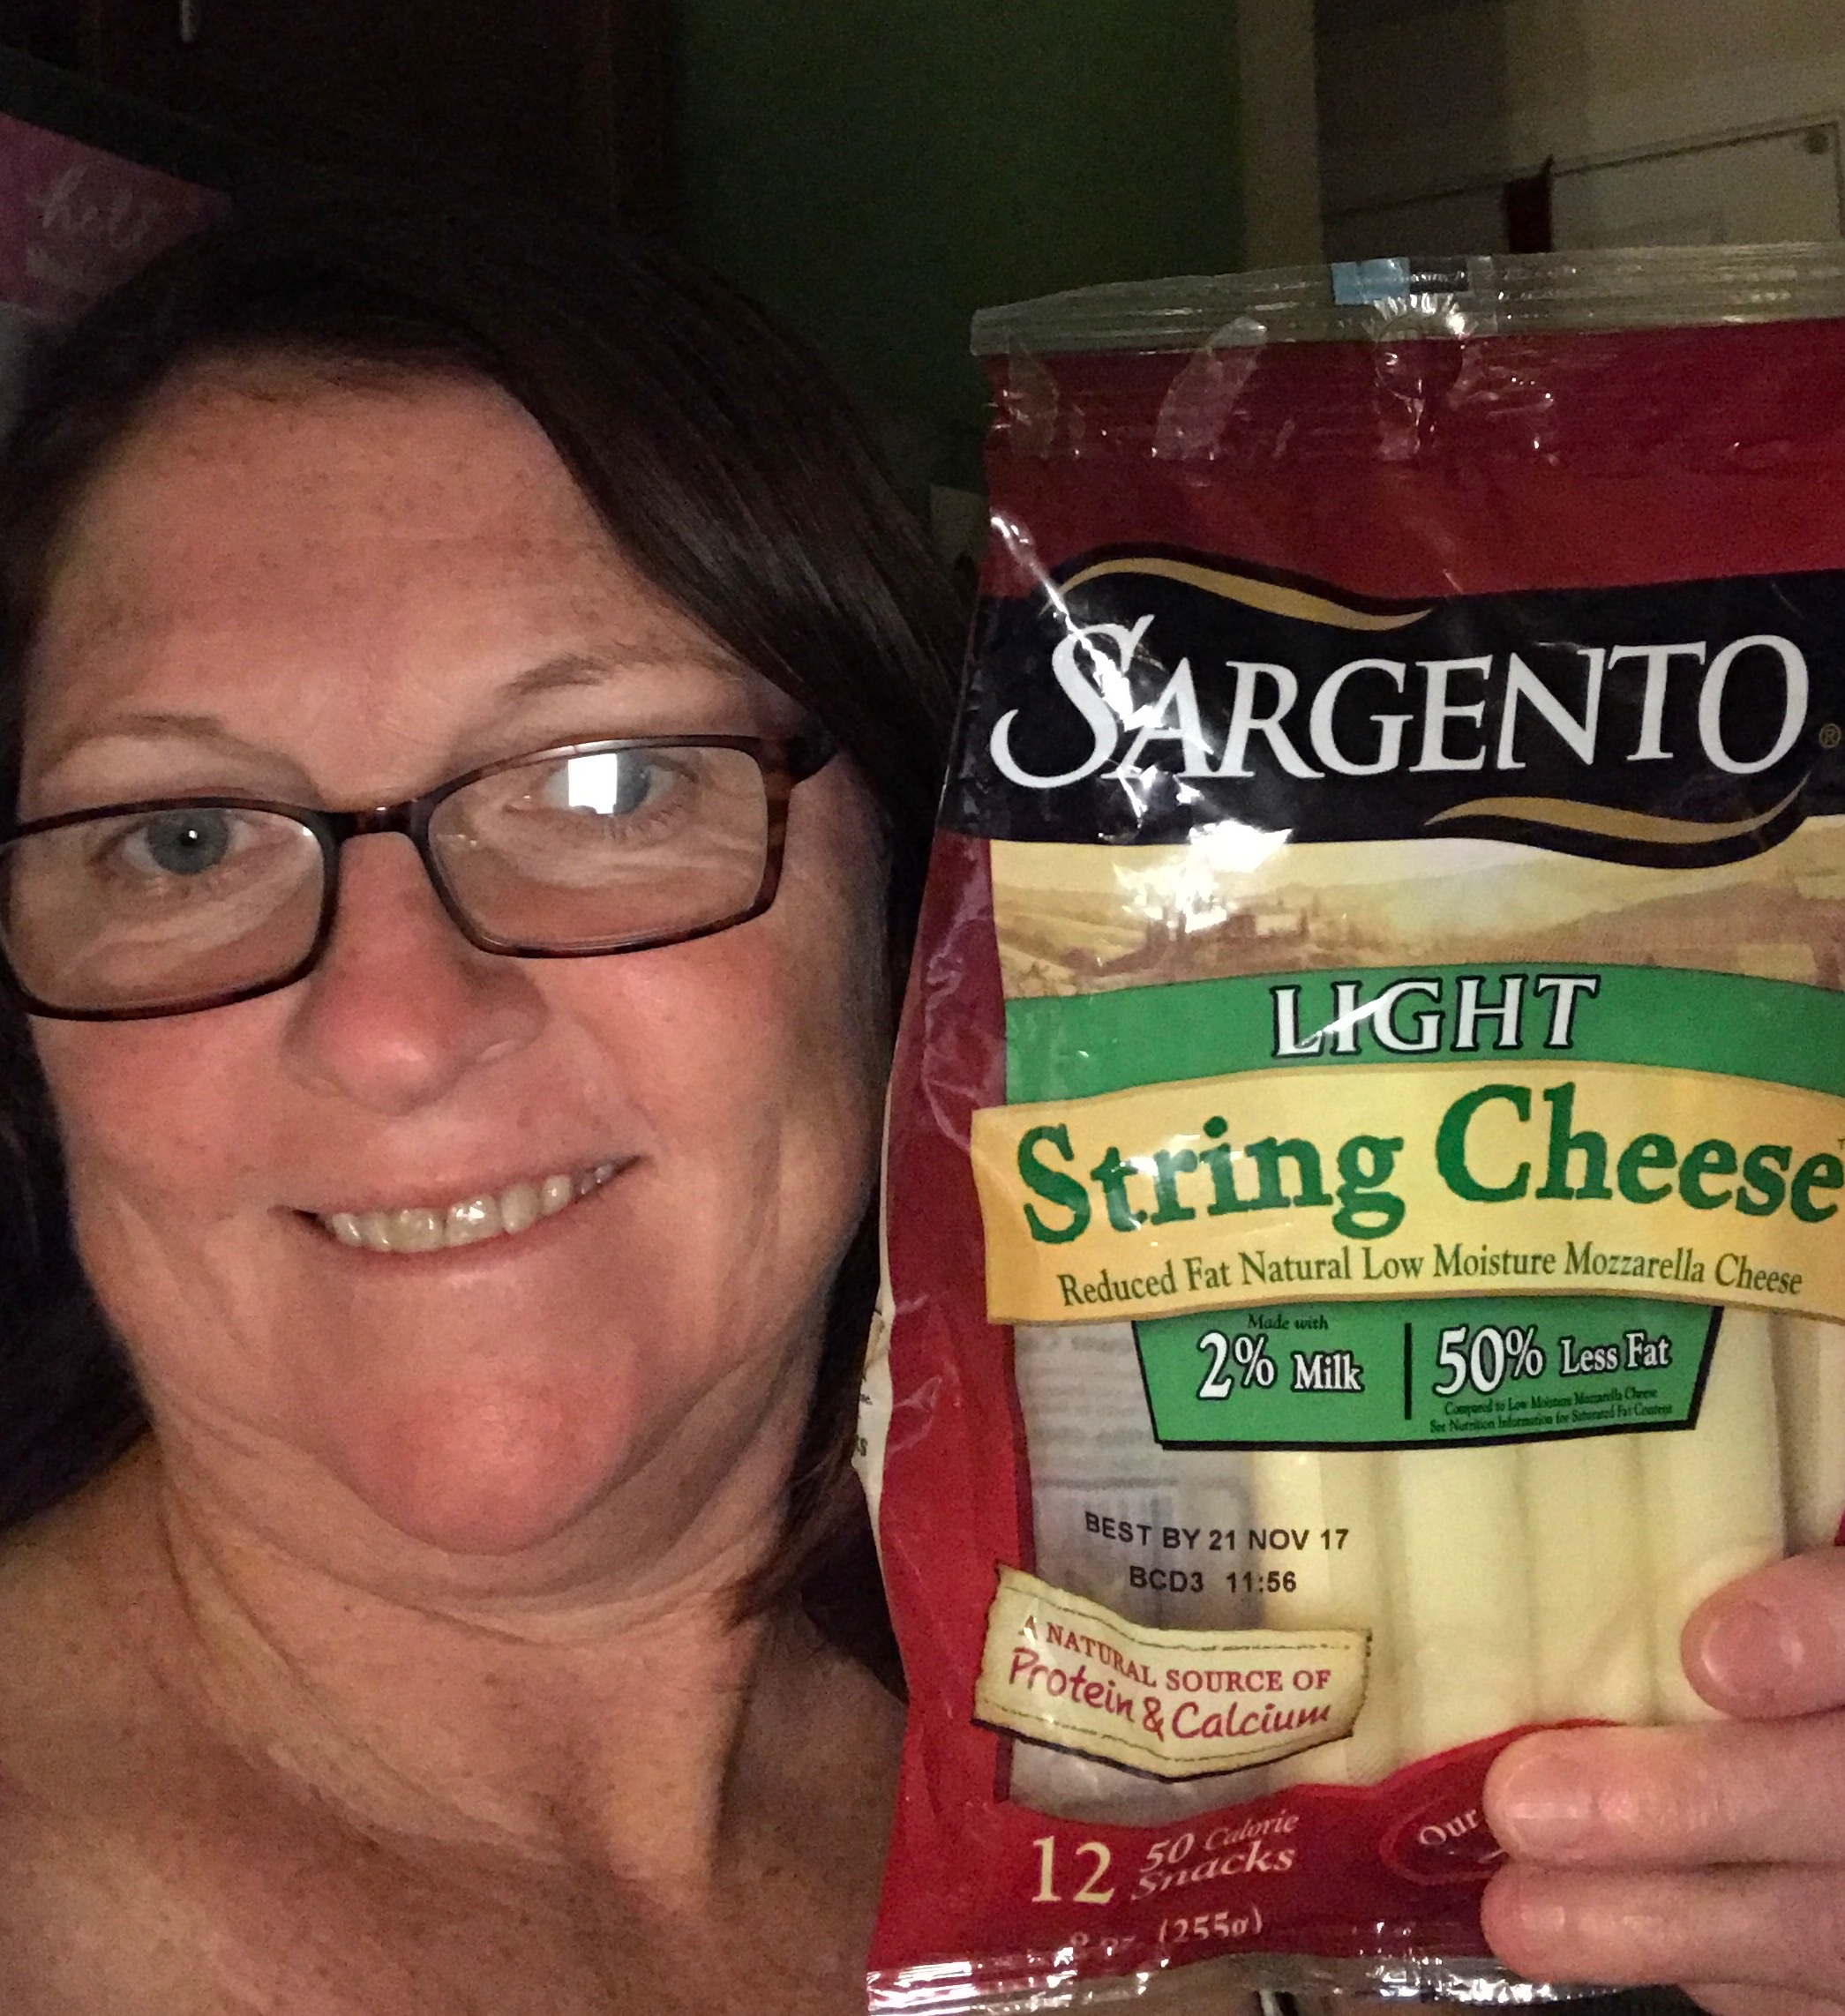 Sargento Light String Cheese uploaded by Denise V.